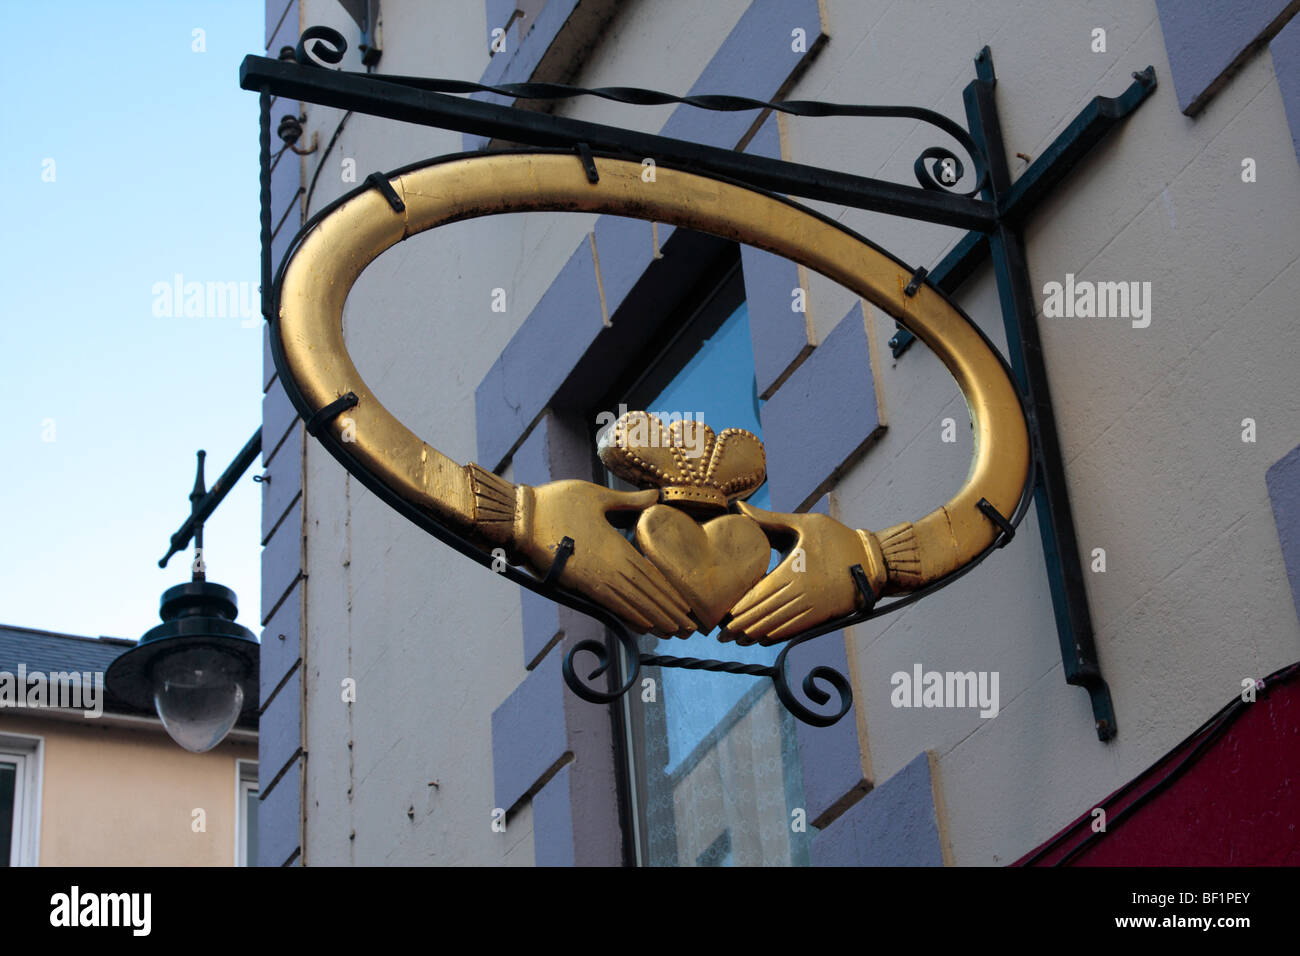 A giant Claddagh ring sign outside a jewellers shop in Galway city Ireland - Stock Image